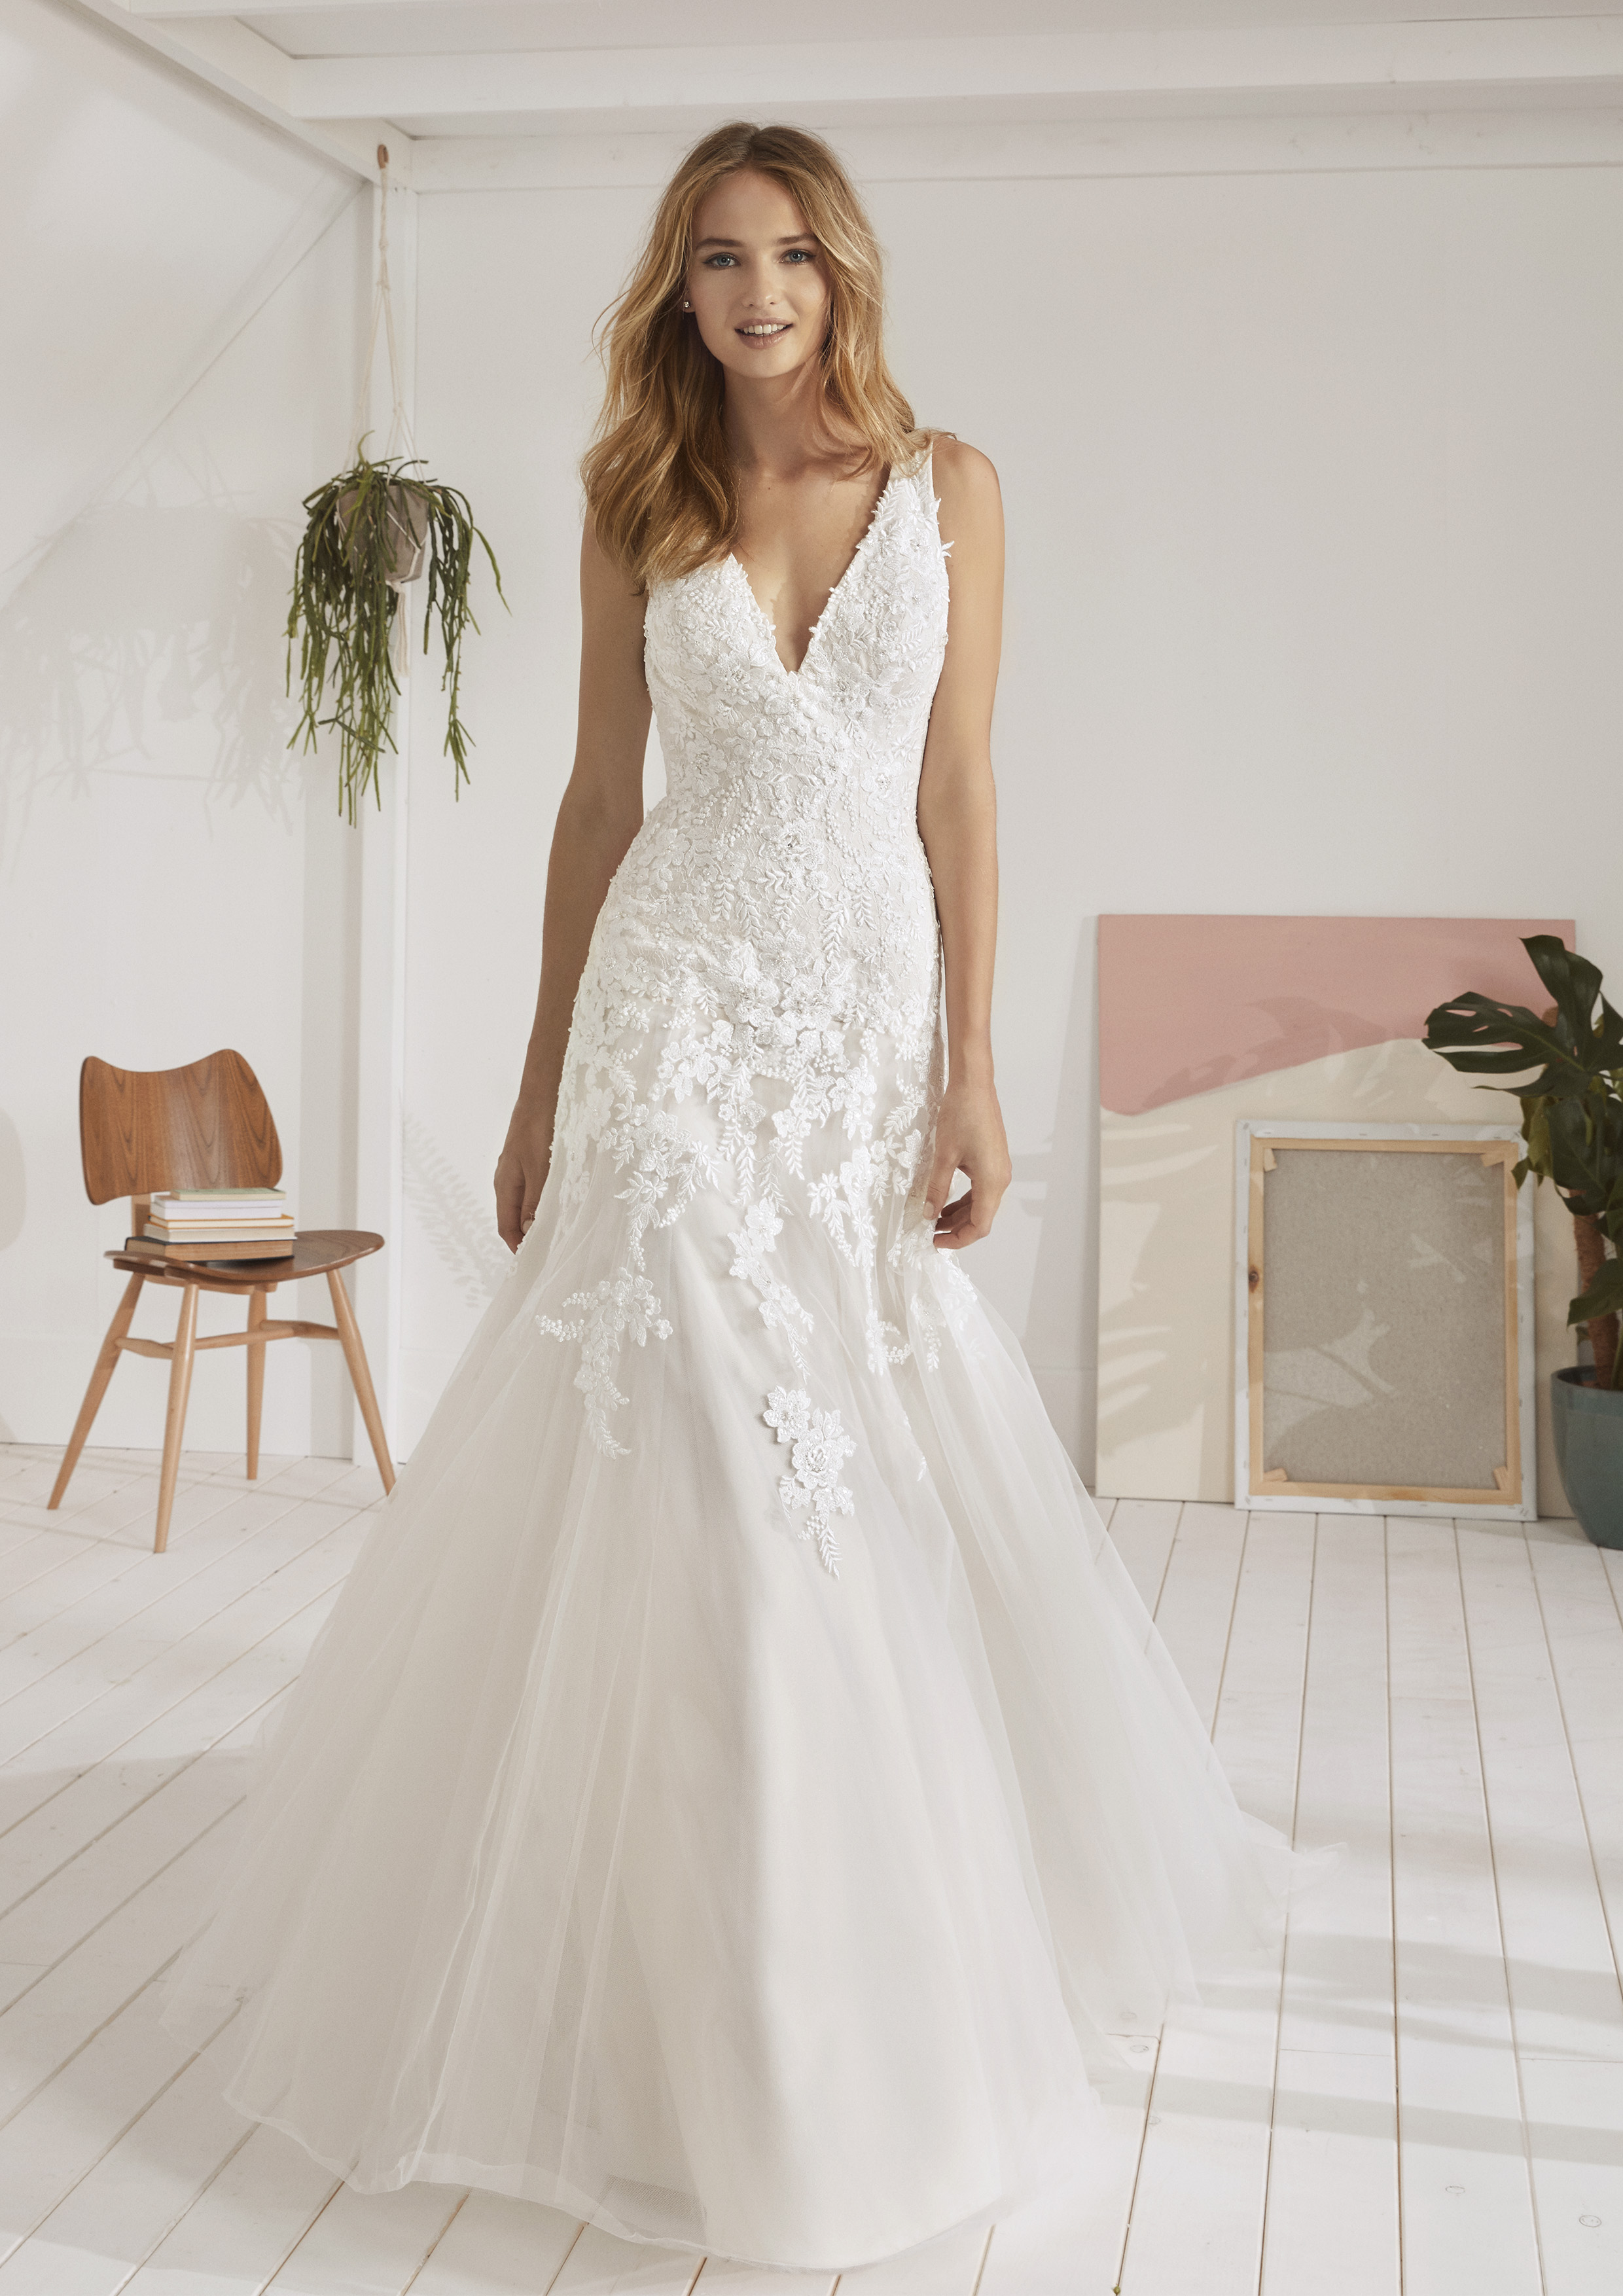 Pronovias White One Oviedo £1,200